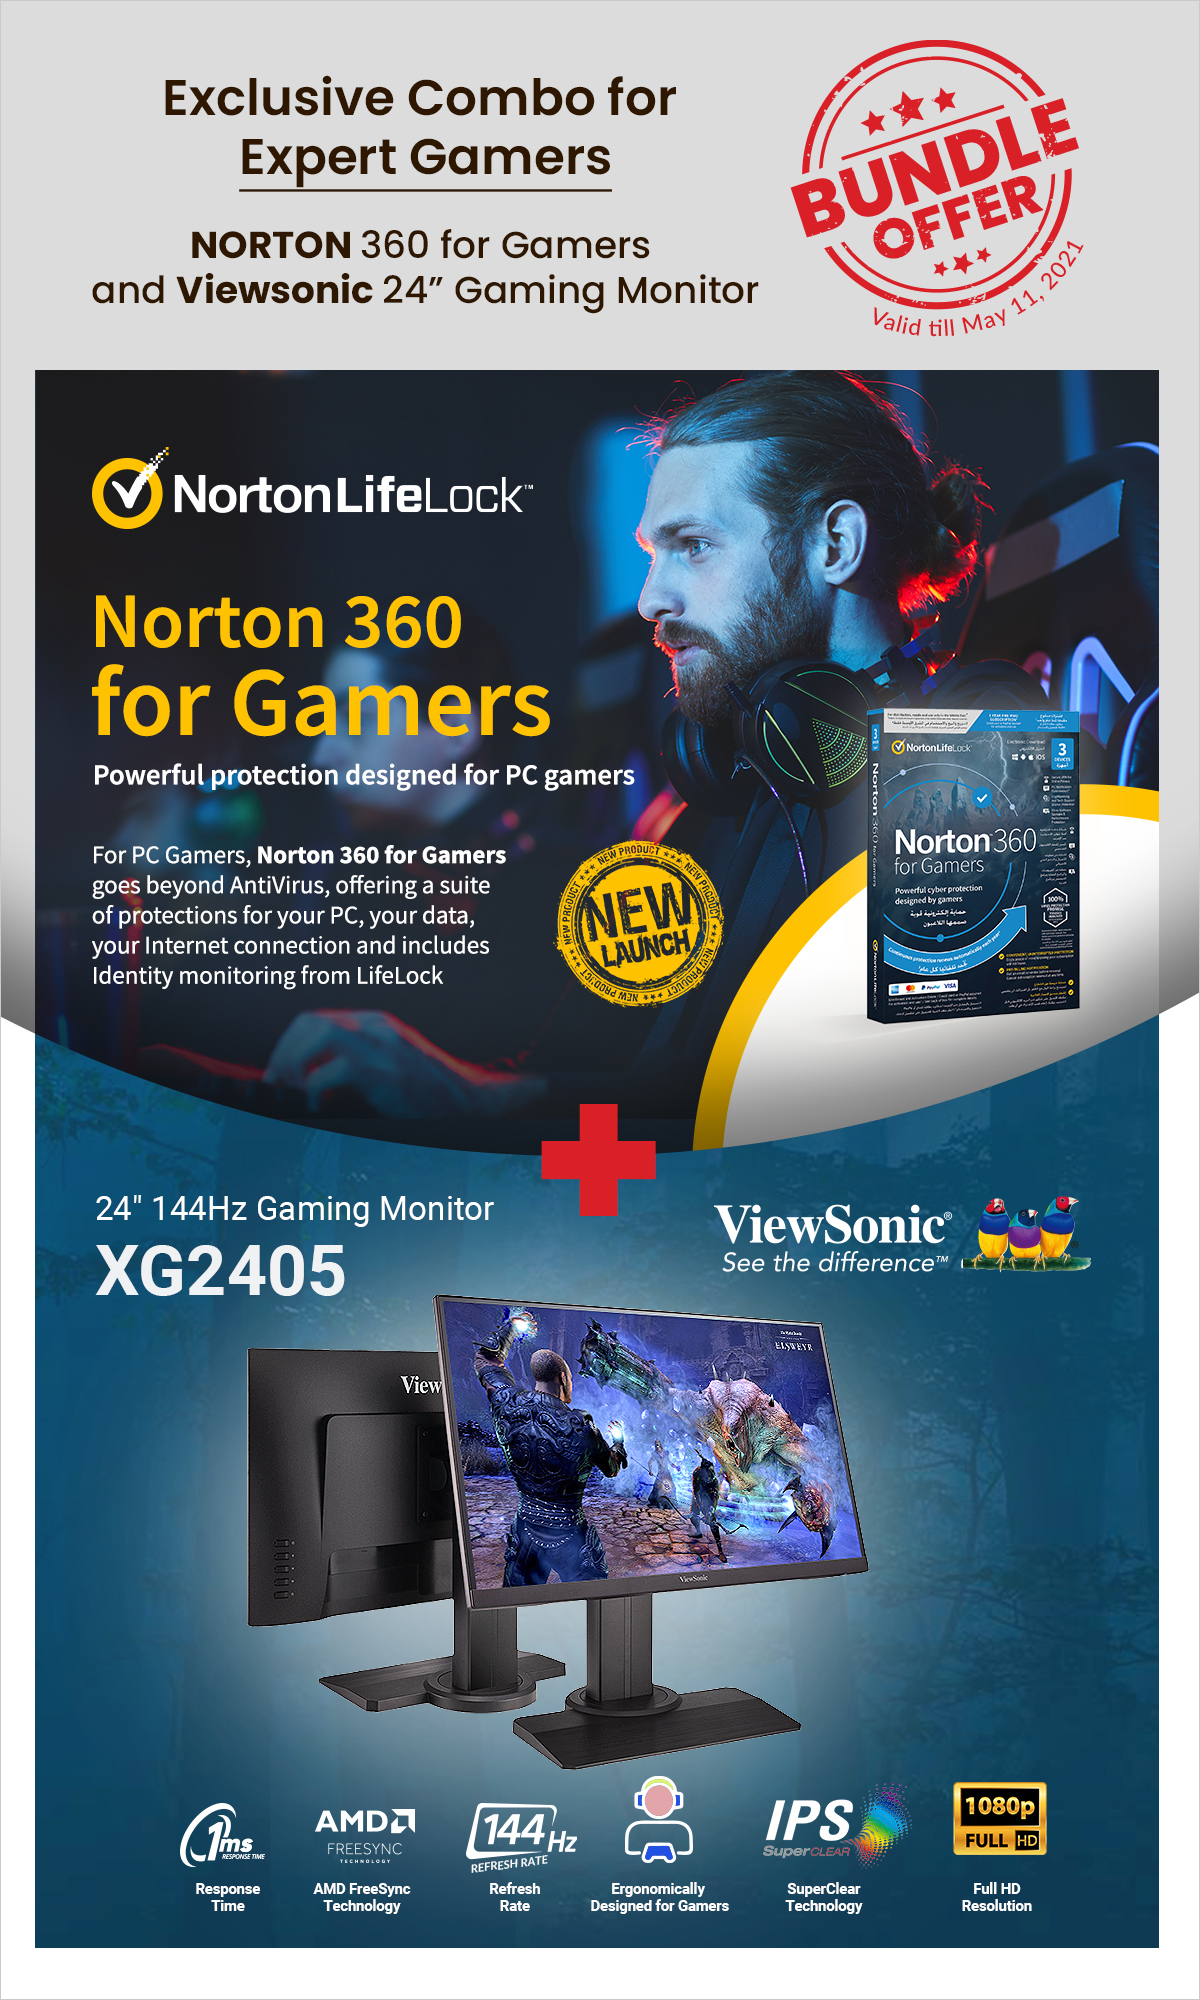 Exclusive Combo for Expert Gamers - Norton + ViewSonic